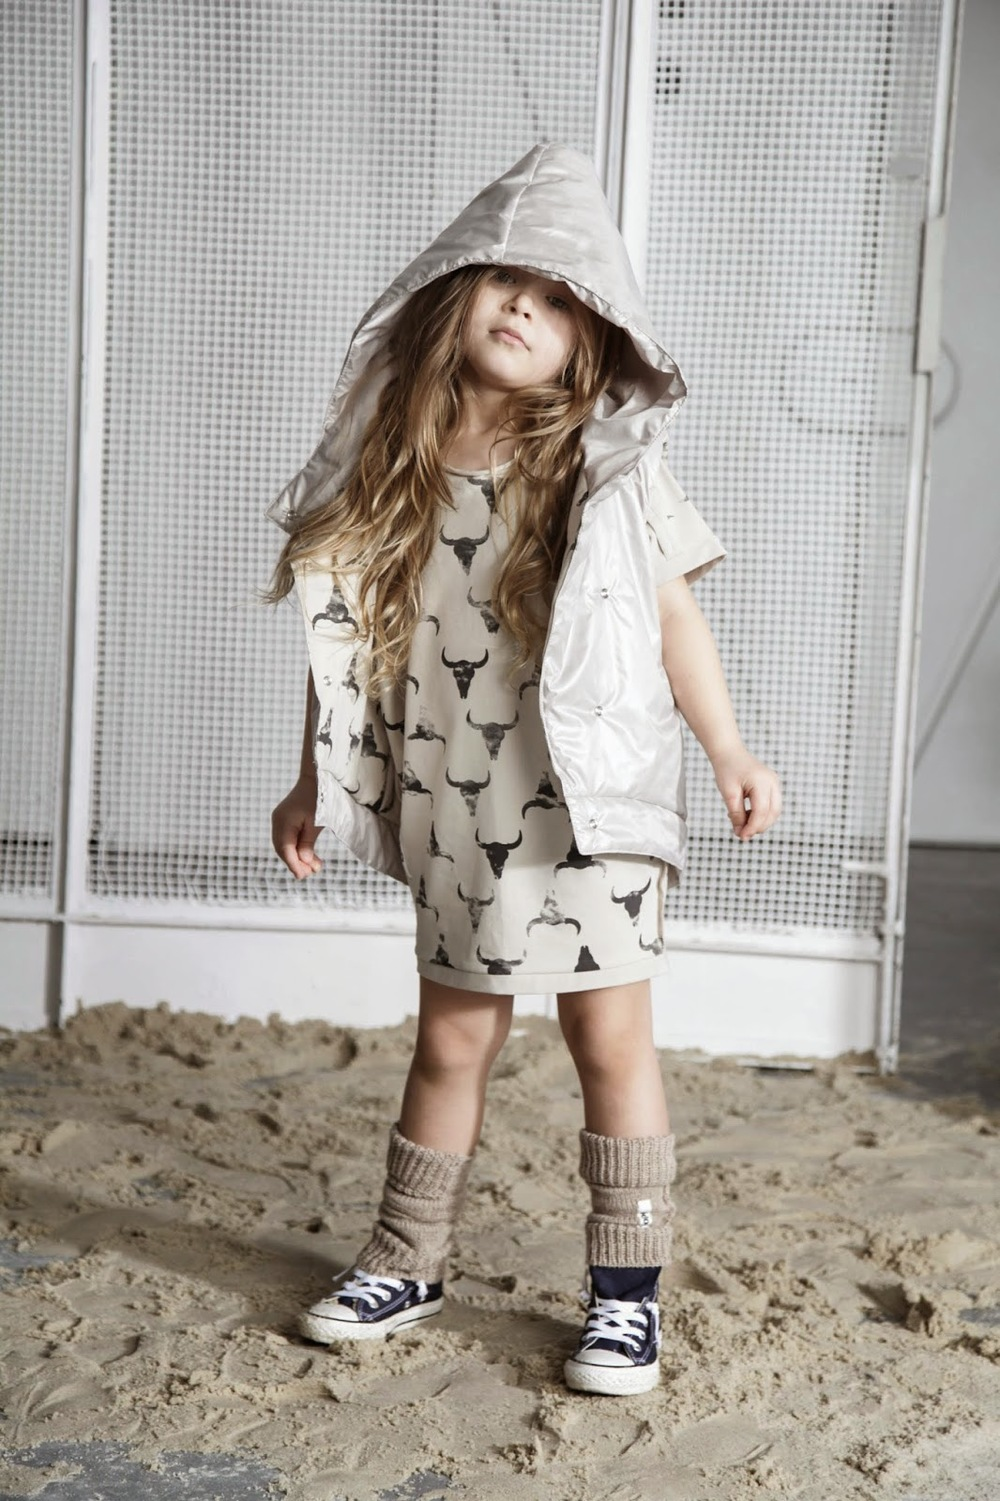 Urban Playwear Kloo By Booso Spring Summer 2015 Collection Knstrct